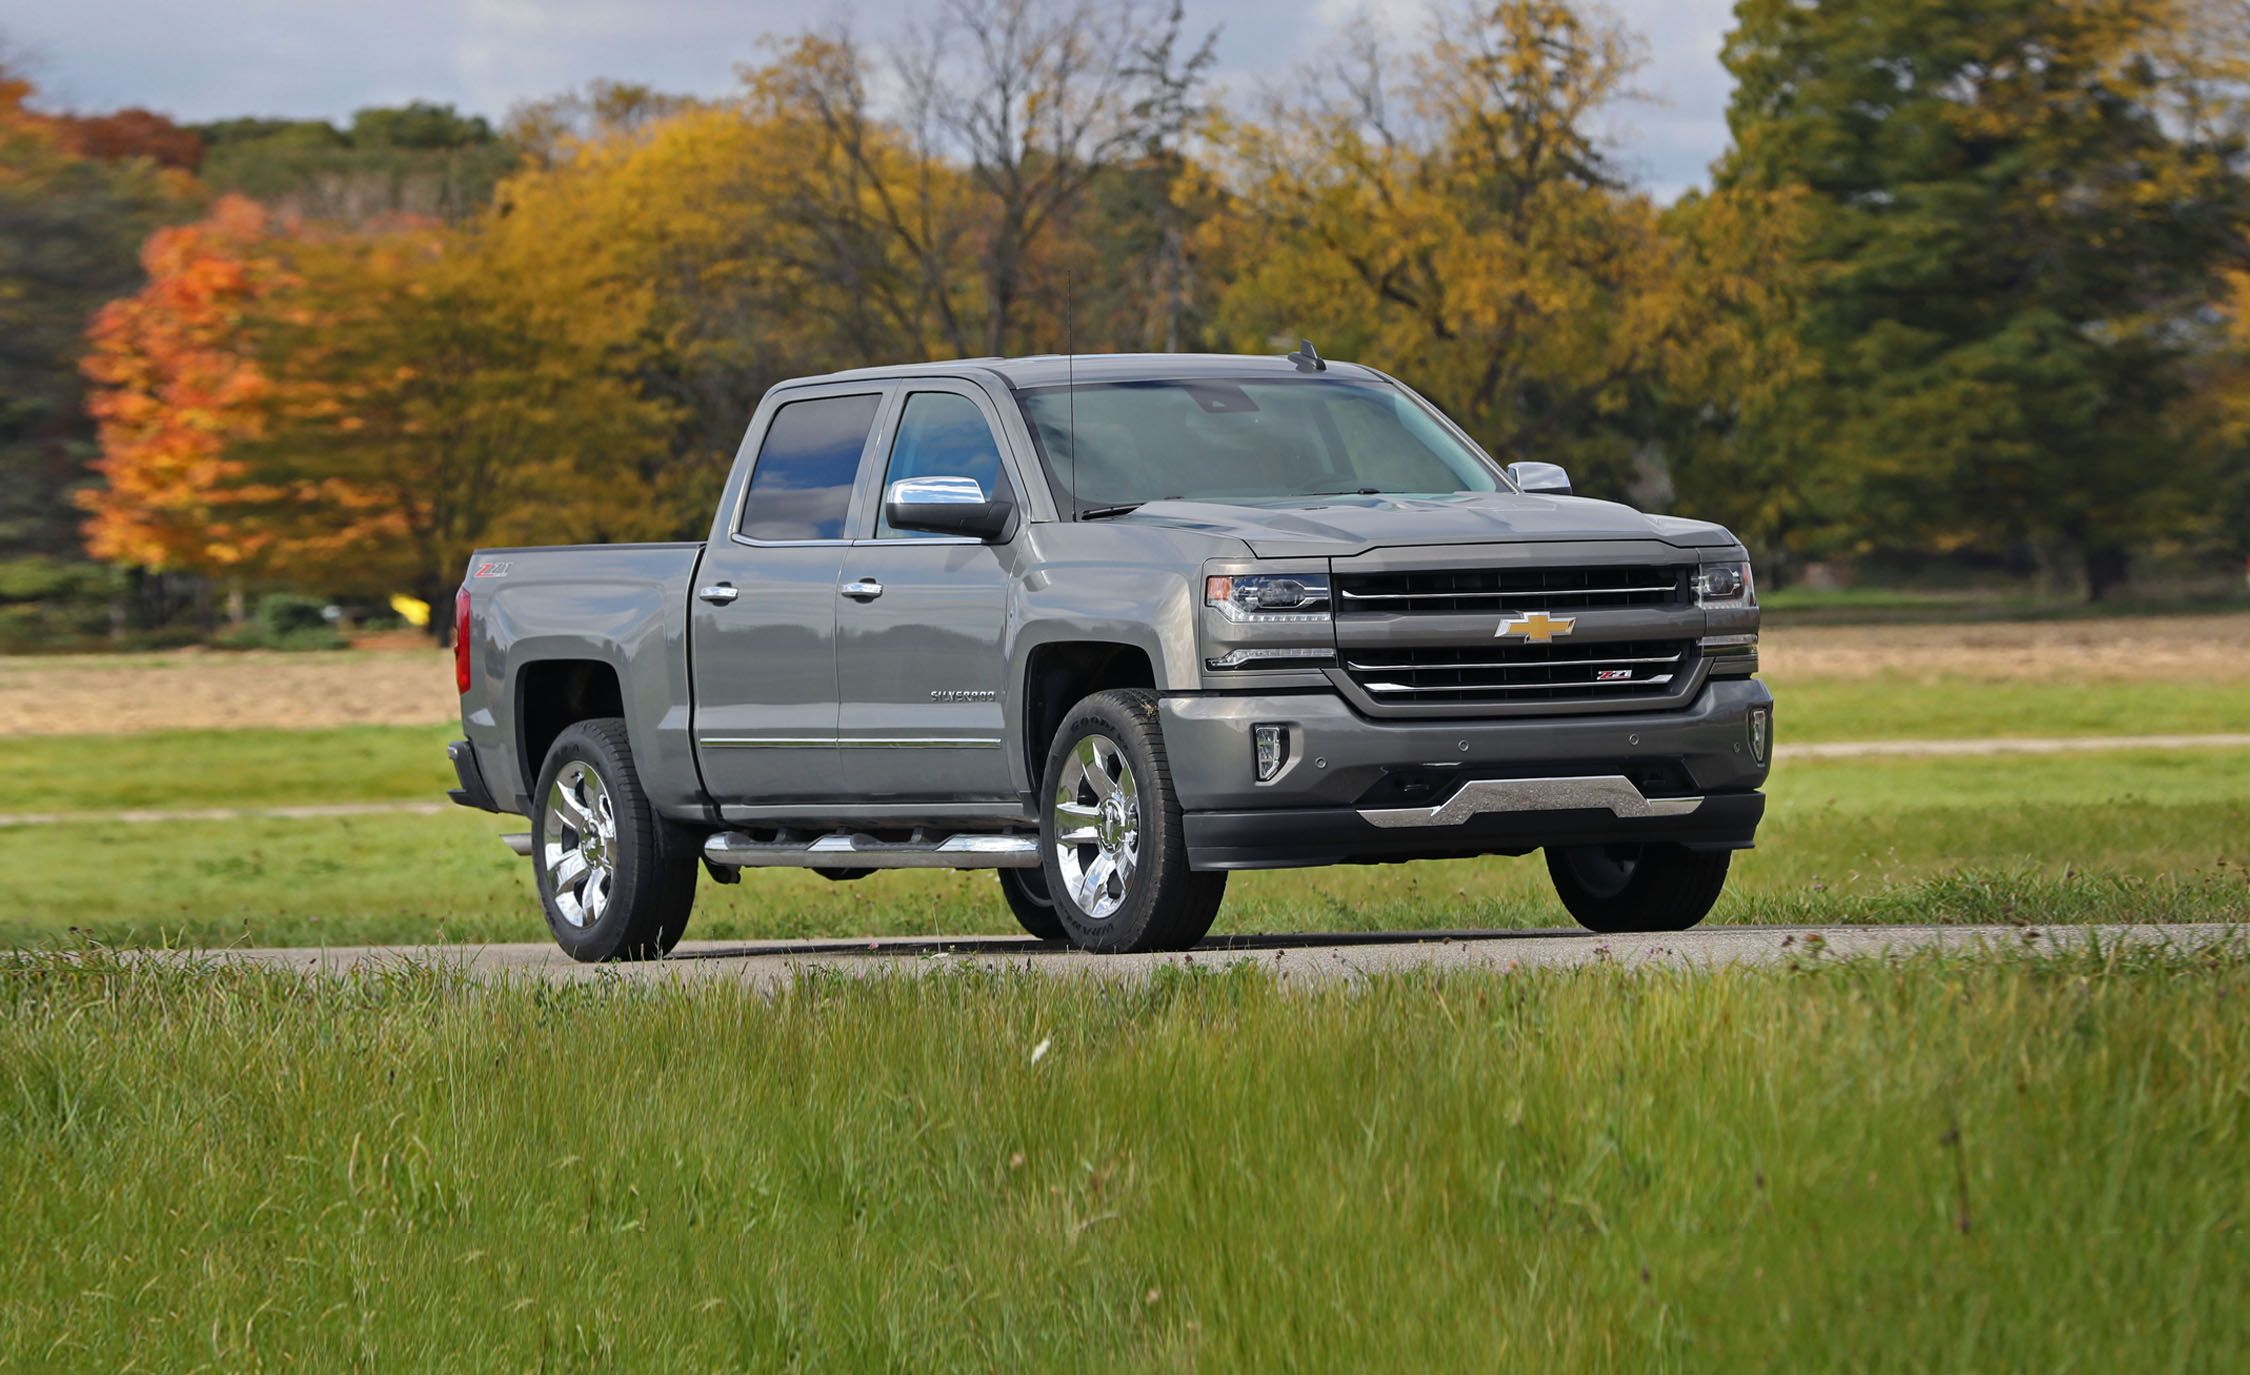 chevrolet silverado 1500 reviews chevrolet silverado 1500 price photos and specs car and. Black Bedroom Furniture Sets. Home Design Ideas